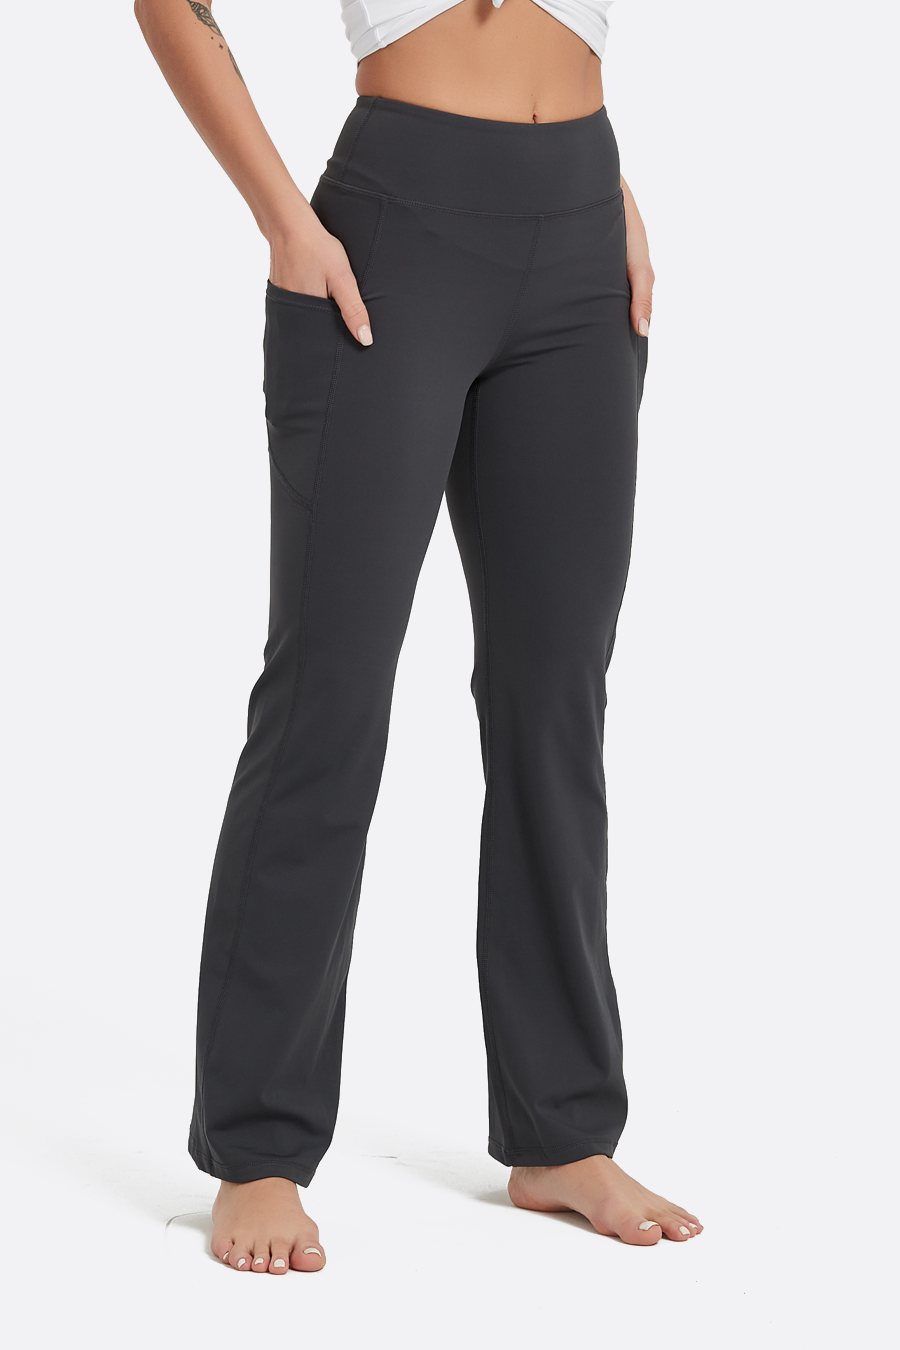 Women's Bootcut High Waisted Yoga Pants with Pockets 30""